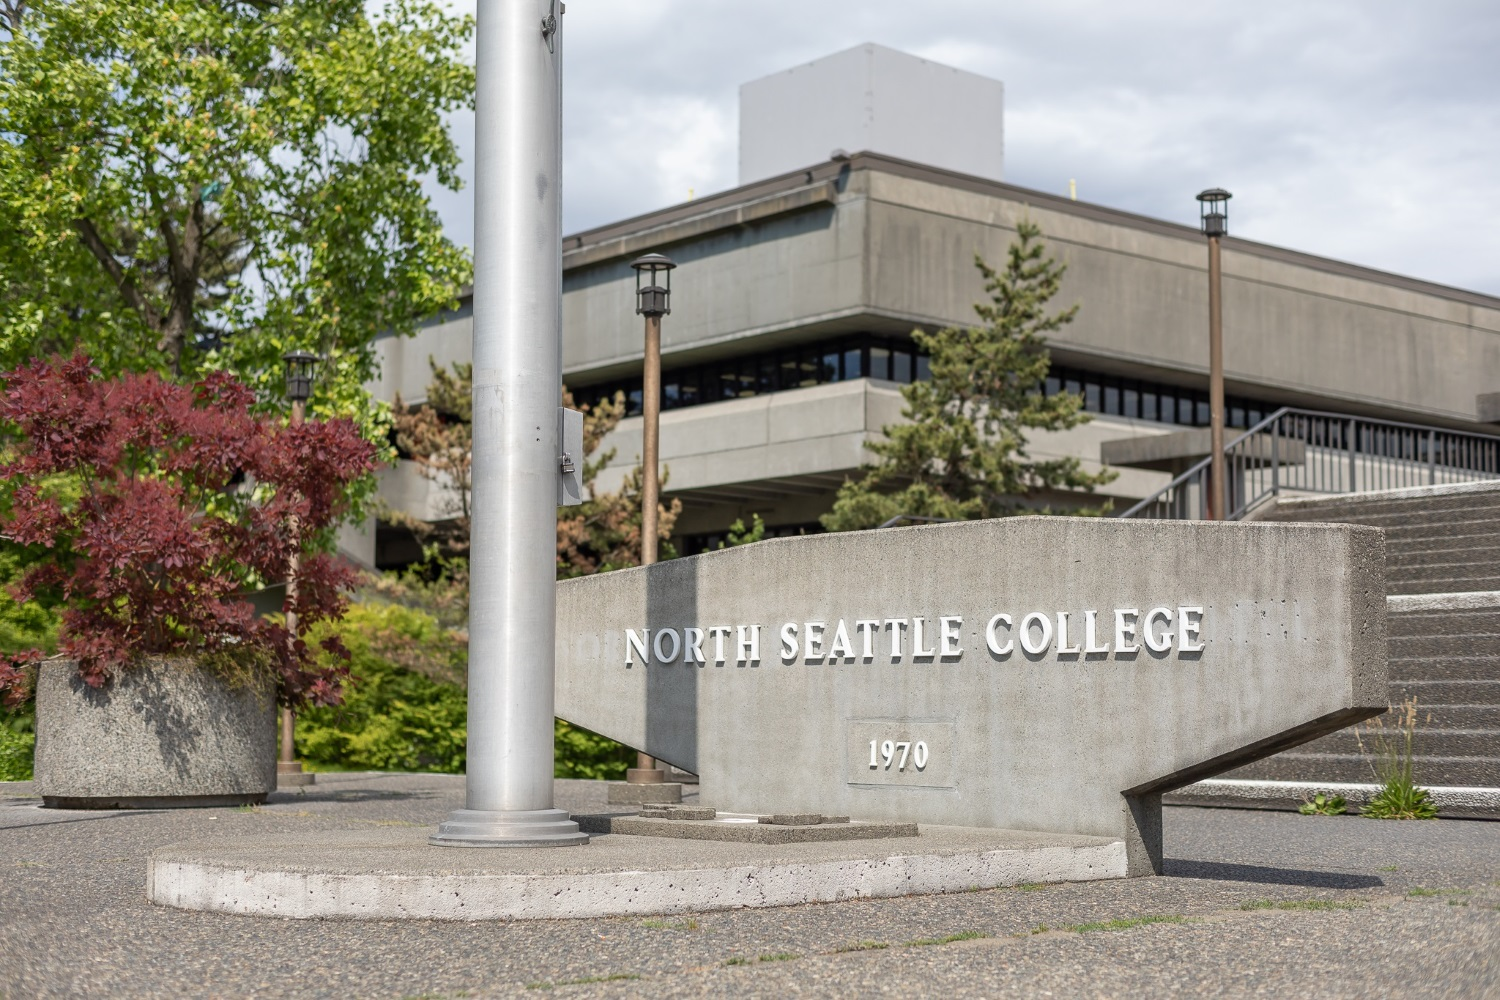 North Seattle College NewsCenter